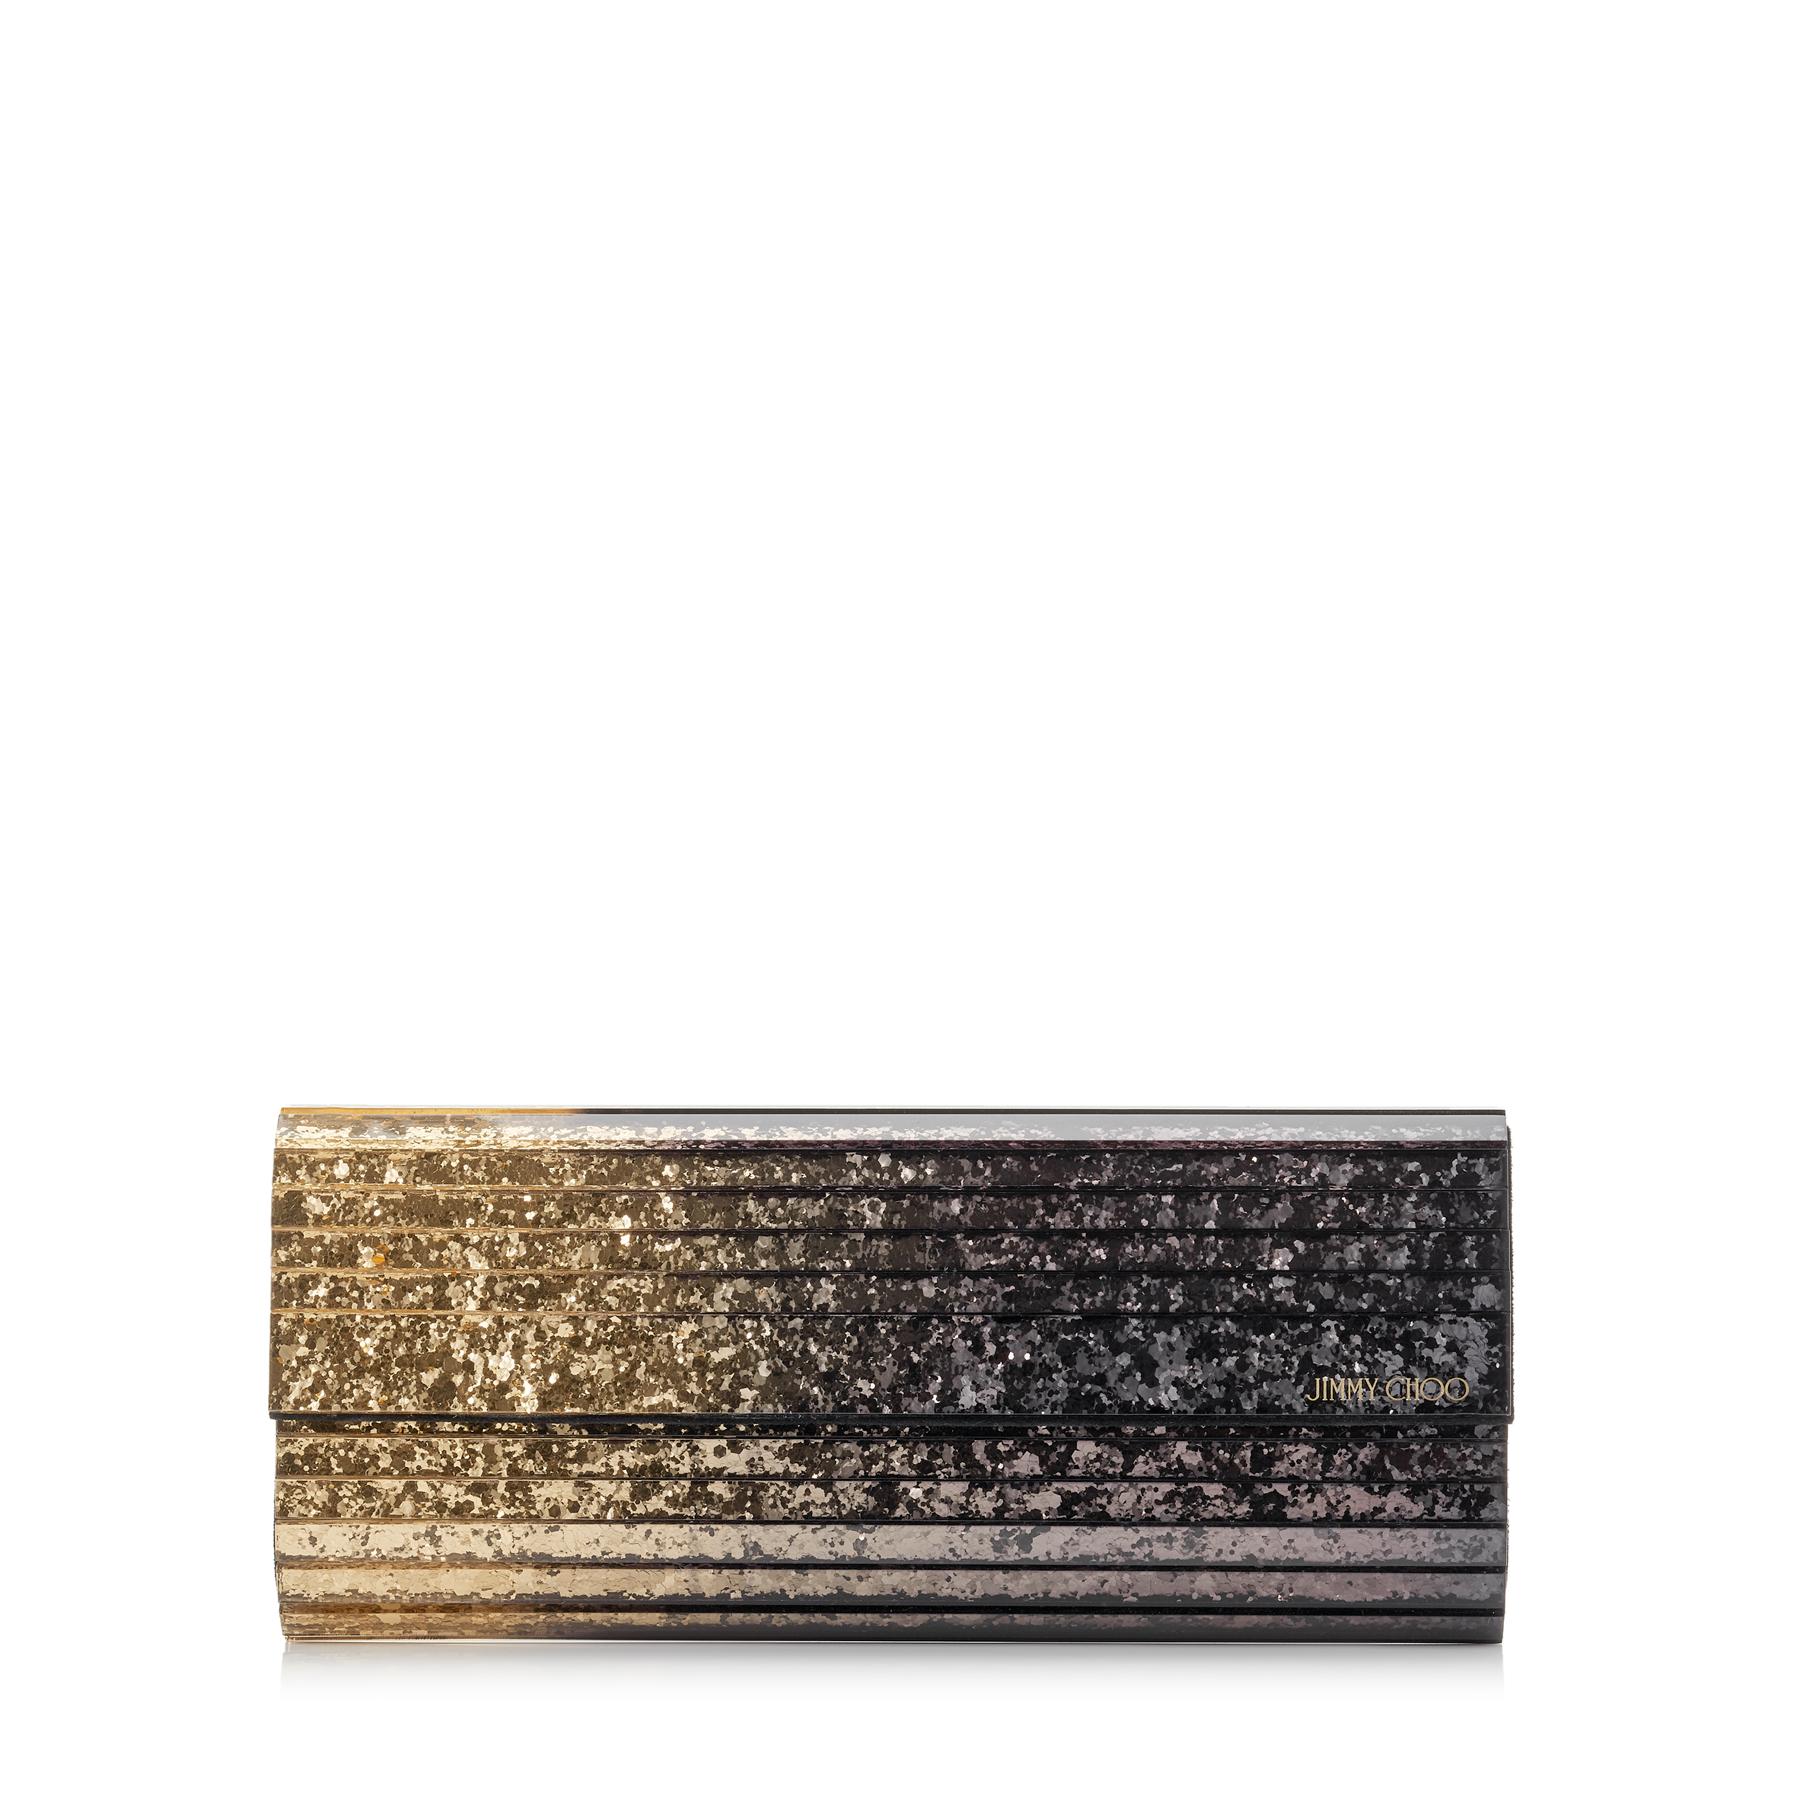 SWEETIE Antique Gold and Anthracite Dégradé Glitter Acrylic Clutch Bag with Gold Chain Strap